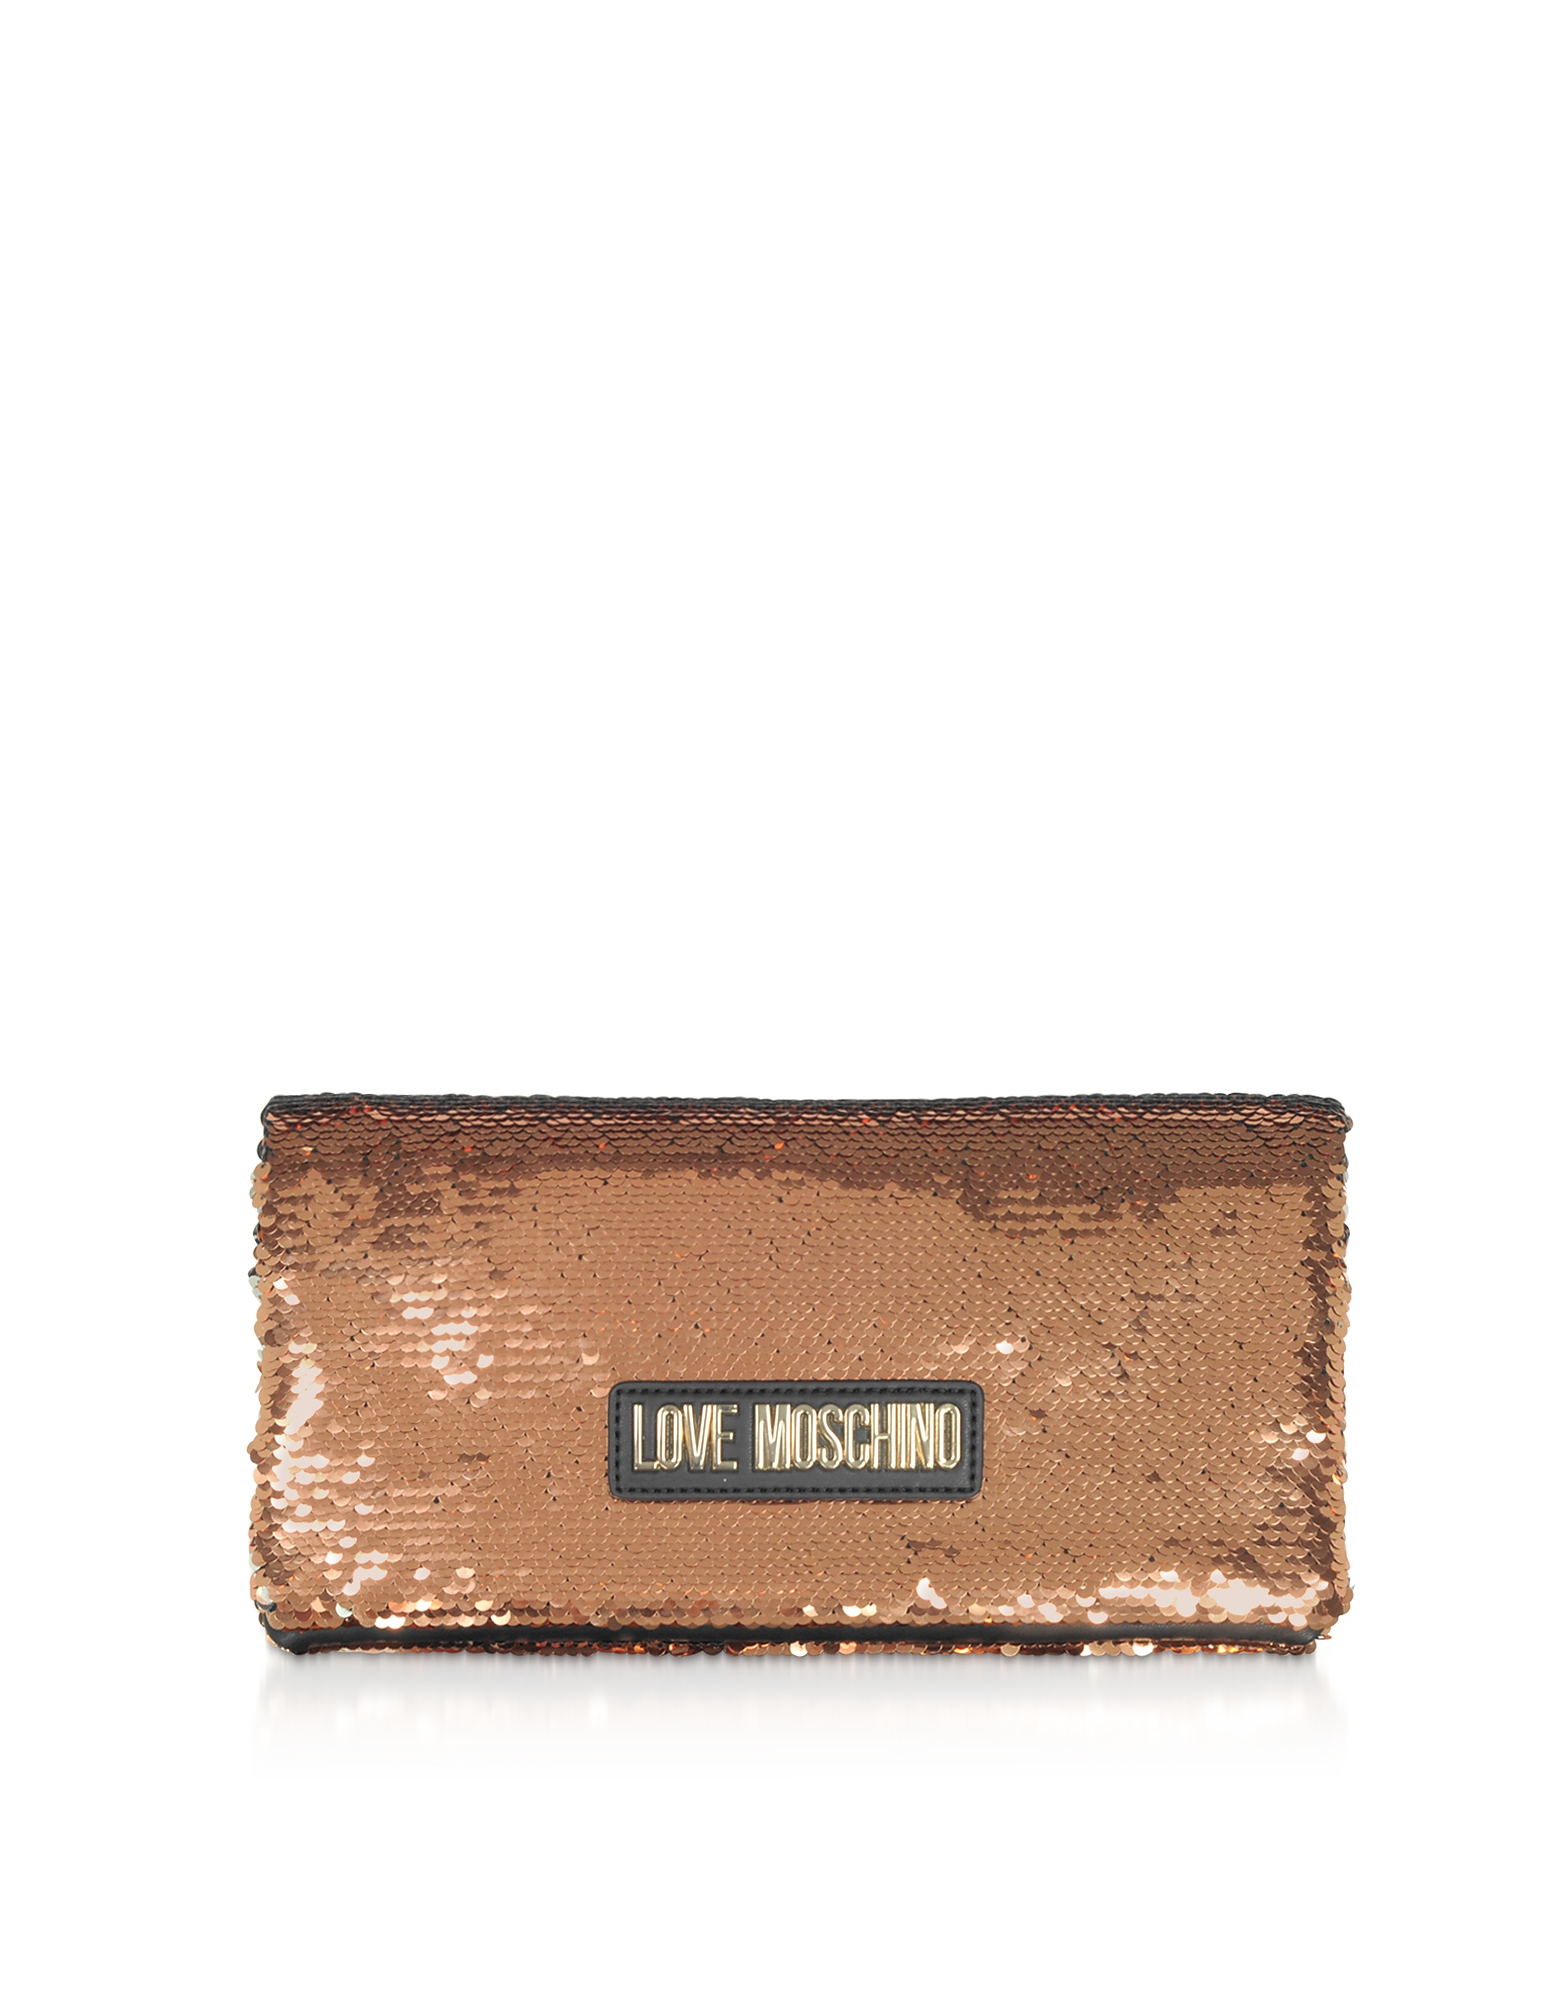 Love Moschino Designer Handbags, Rose Gold Sequins Clutch w/ Chain Straps